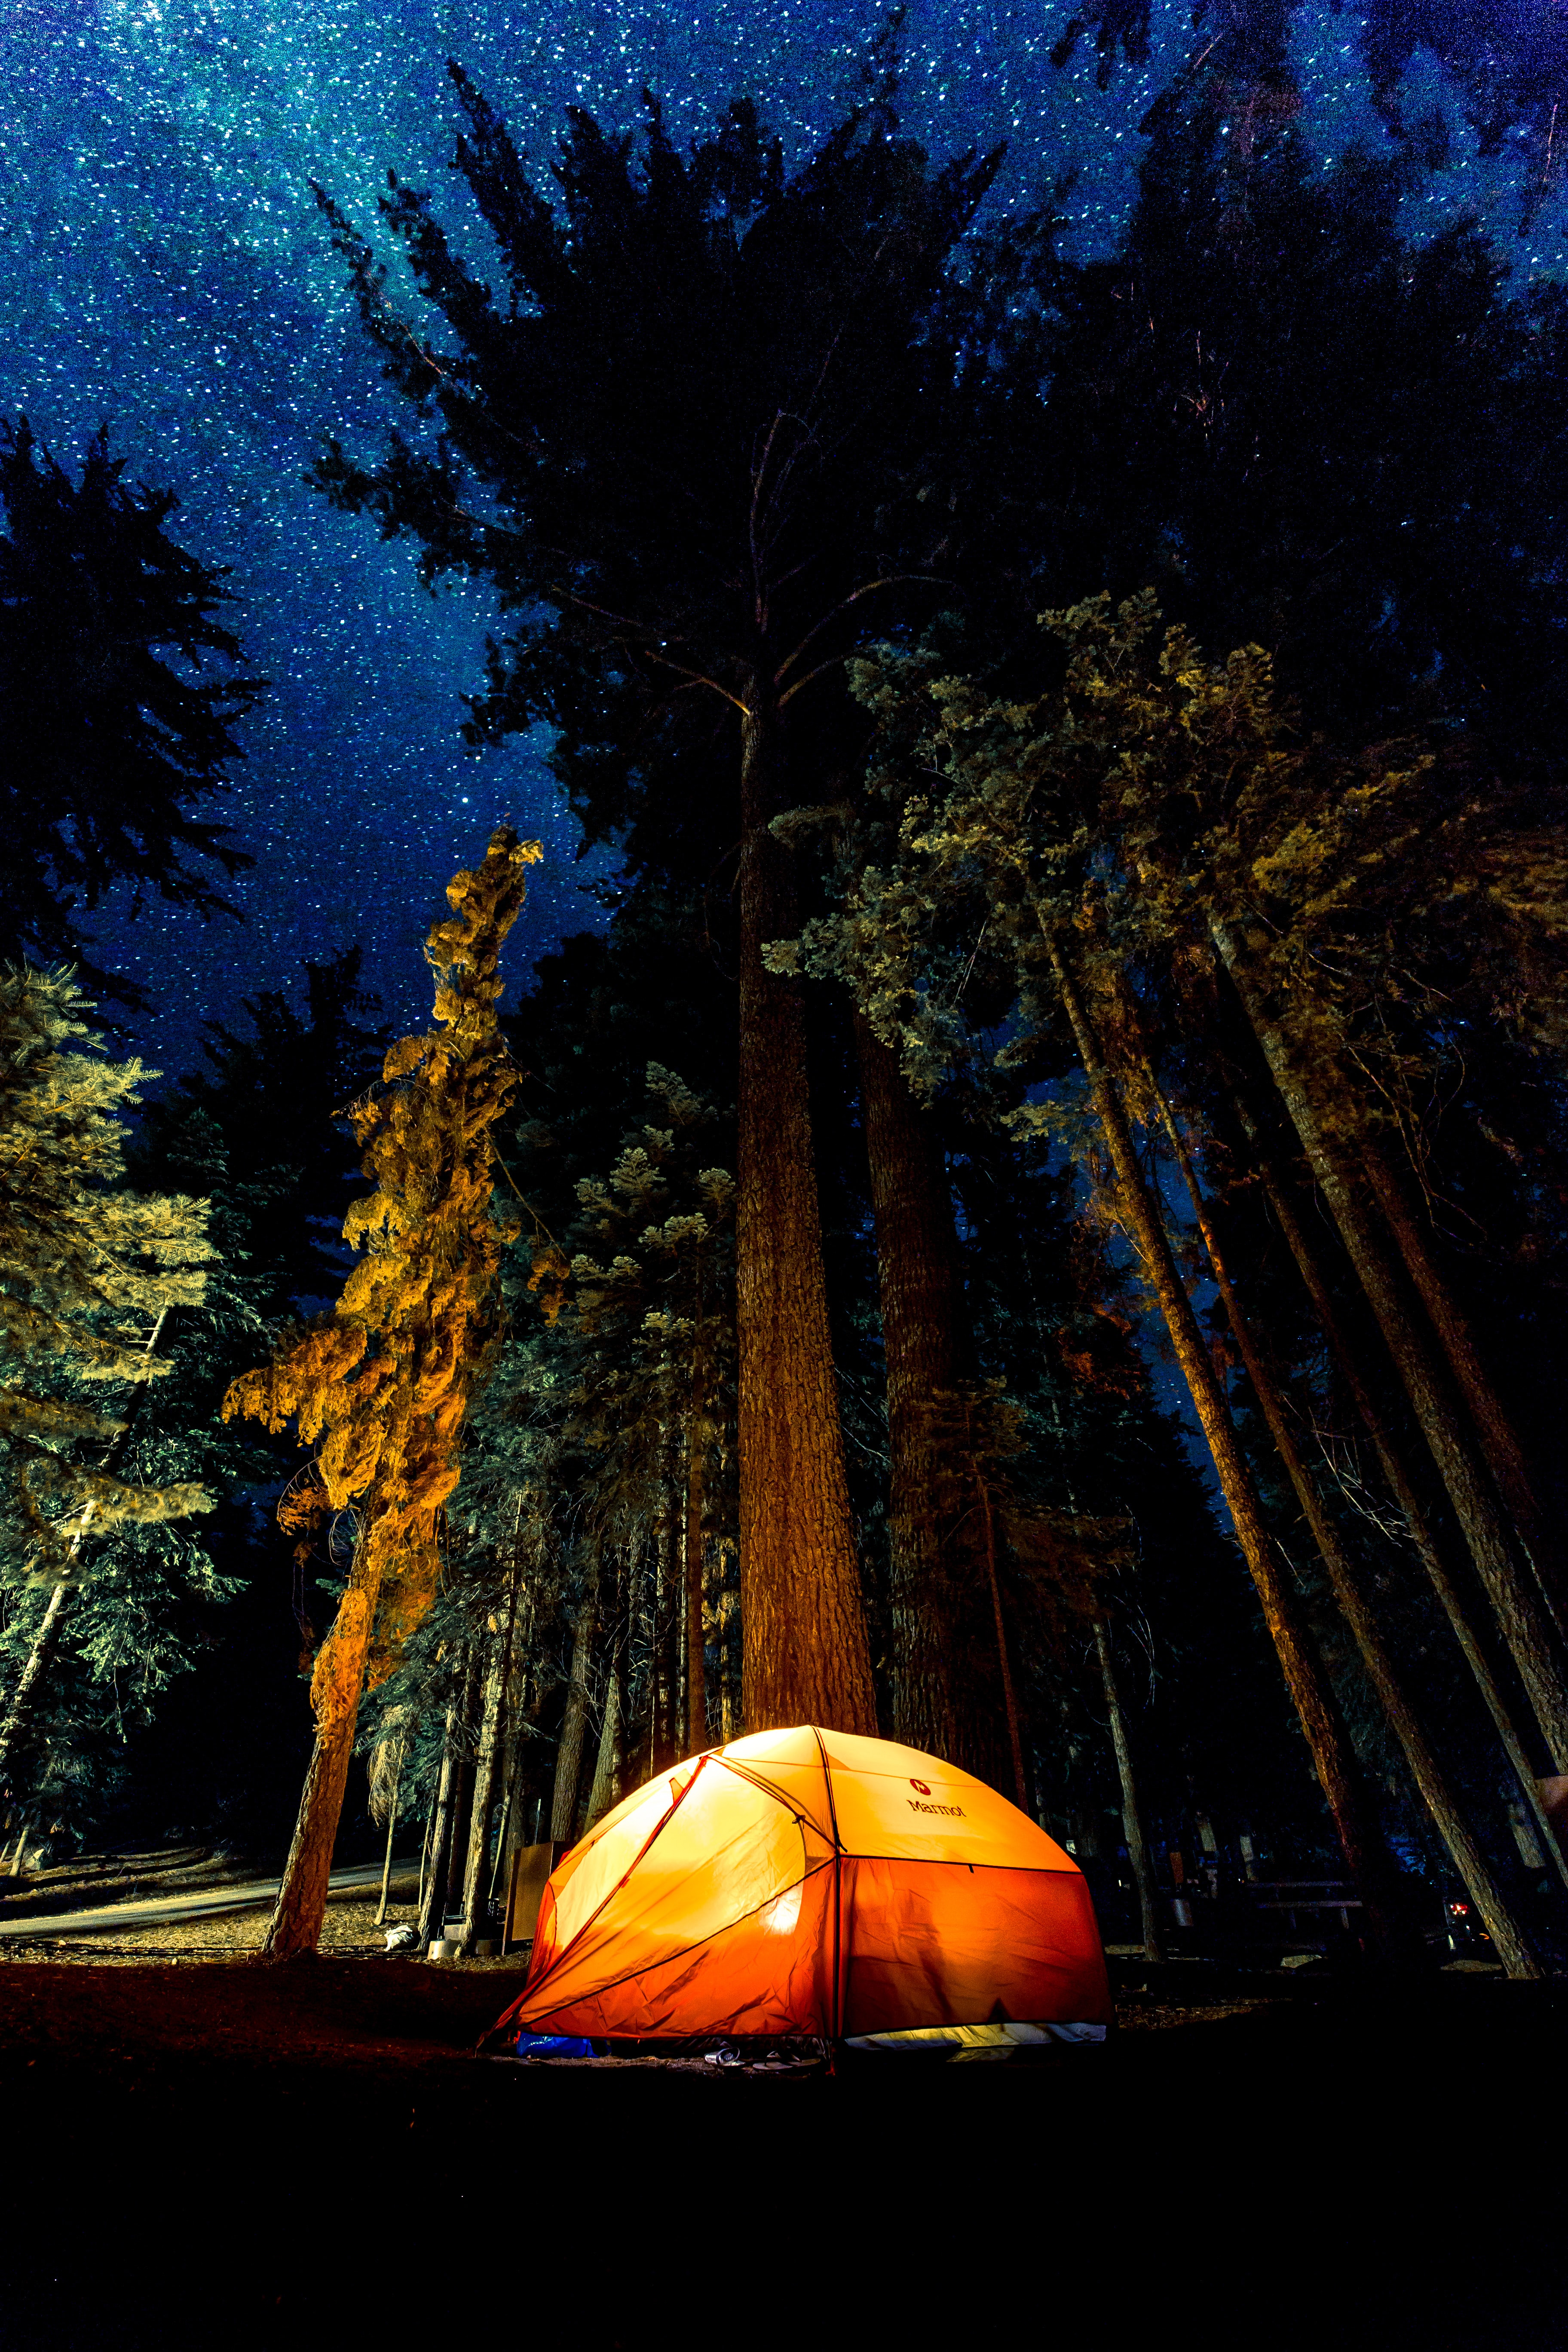 Camping beneath the stars